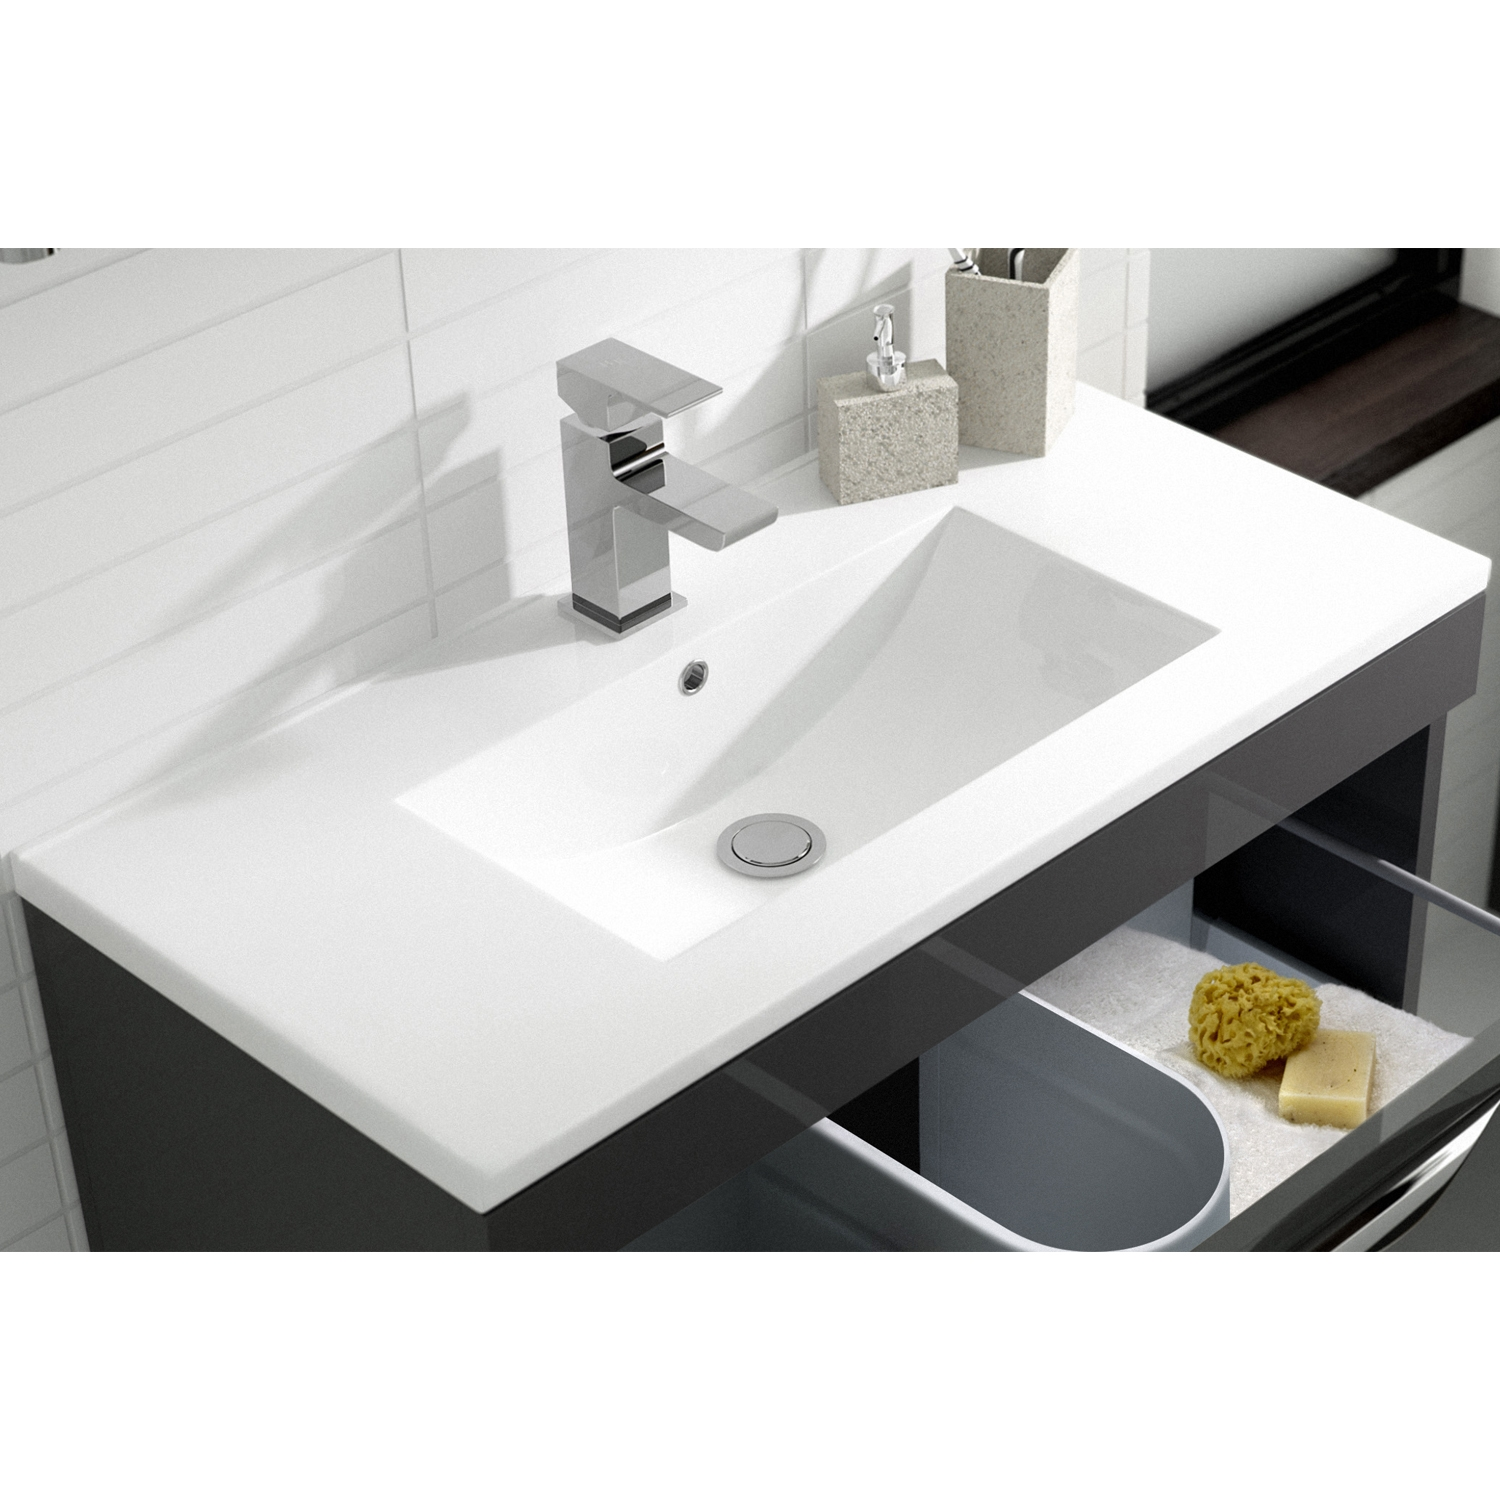 Hudson Reed Memoir Floor Standing Vanity Unit with Minimalist Basin 2 800mm W Gloss Grey 1 Tap Hole